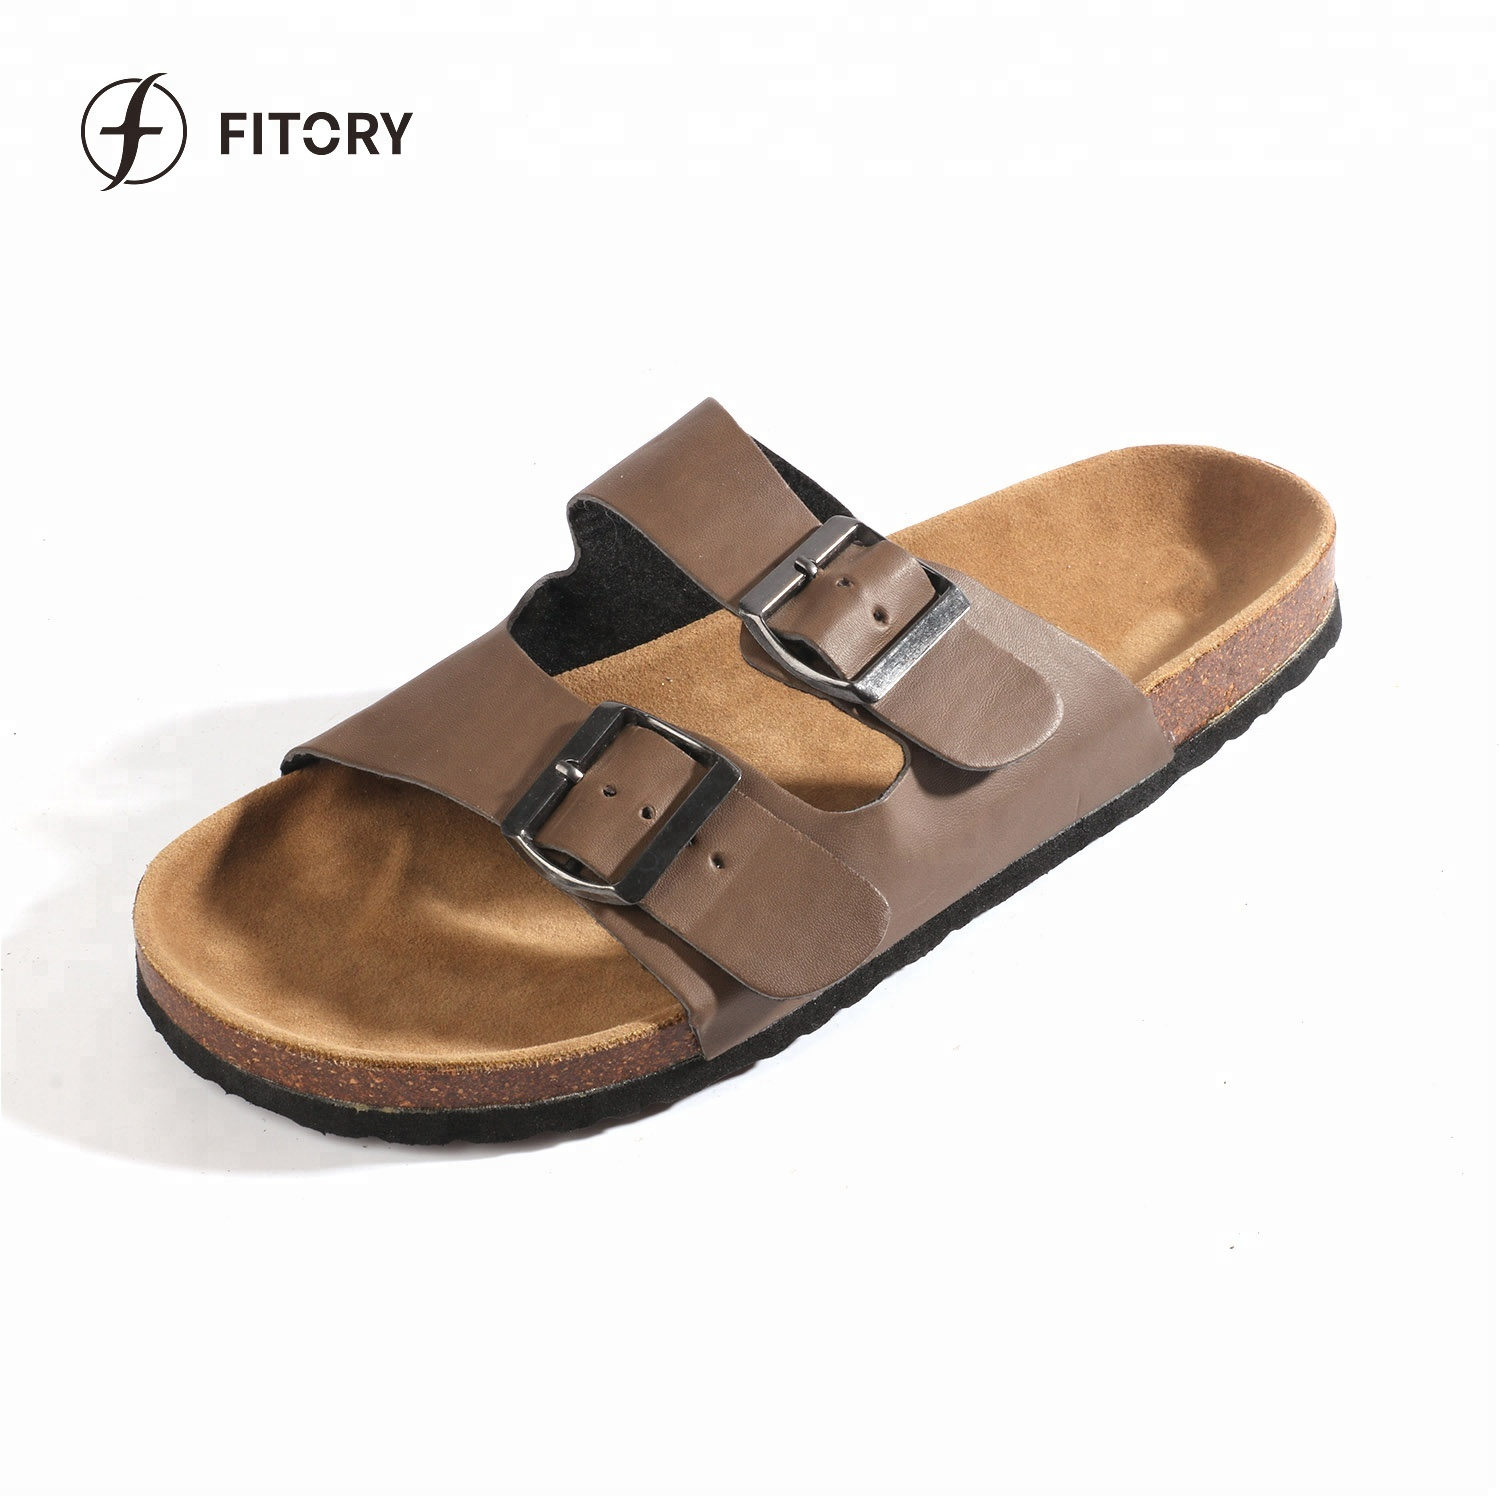 cd4a48b91 Fitory Leather Strap Comfortable Durable Cork Sole Sandals For Men ...